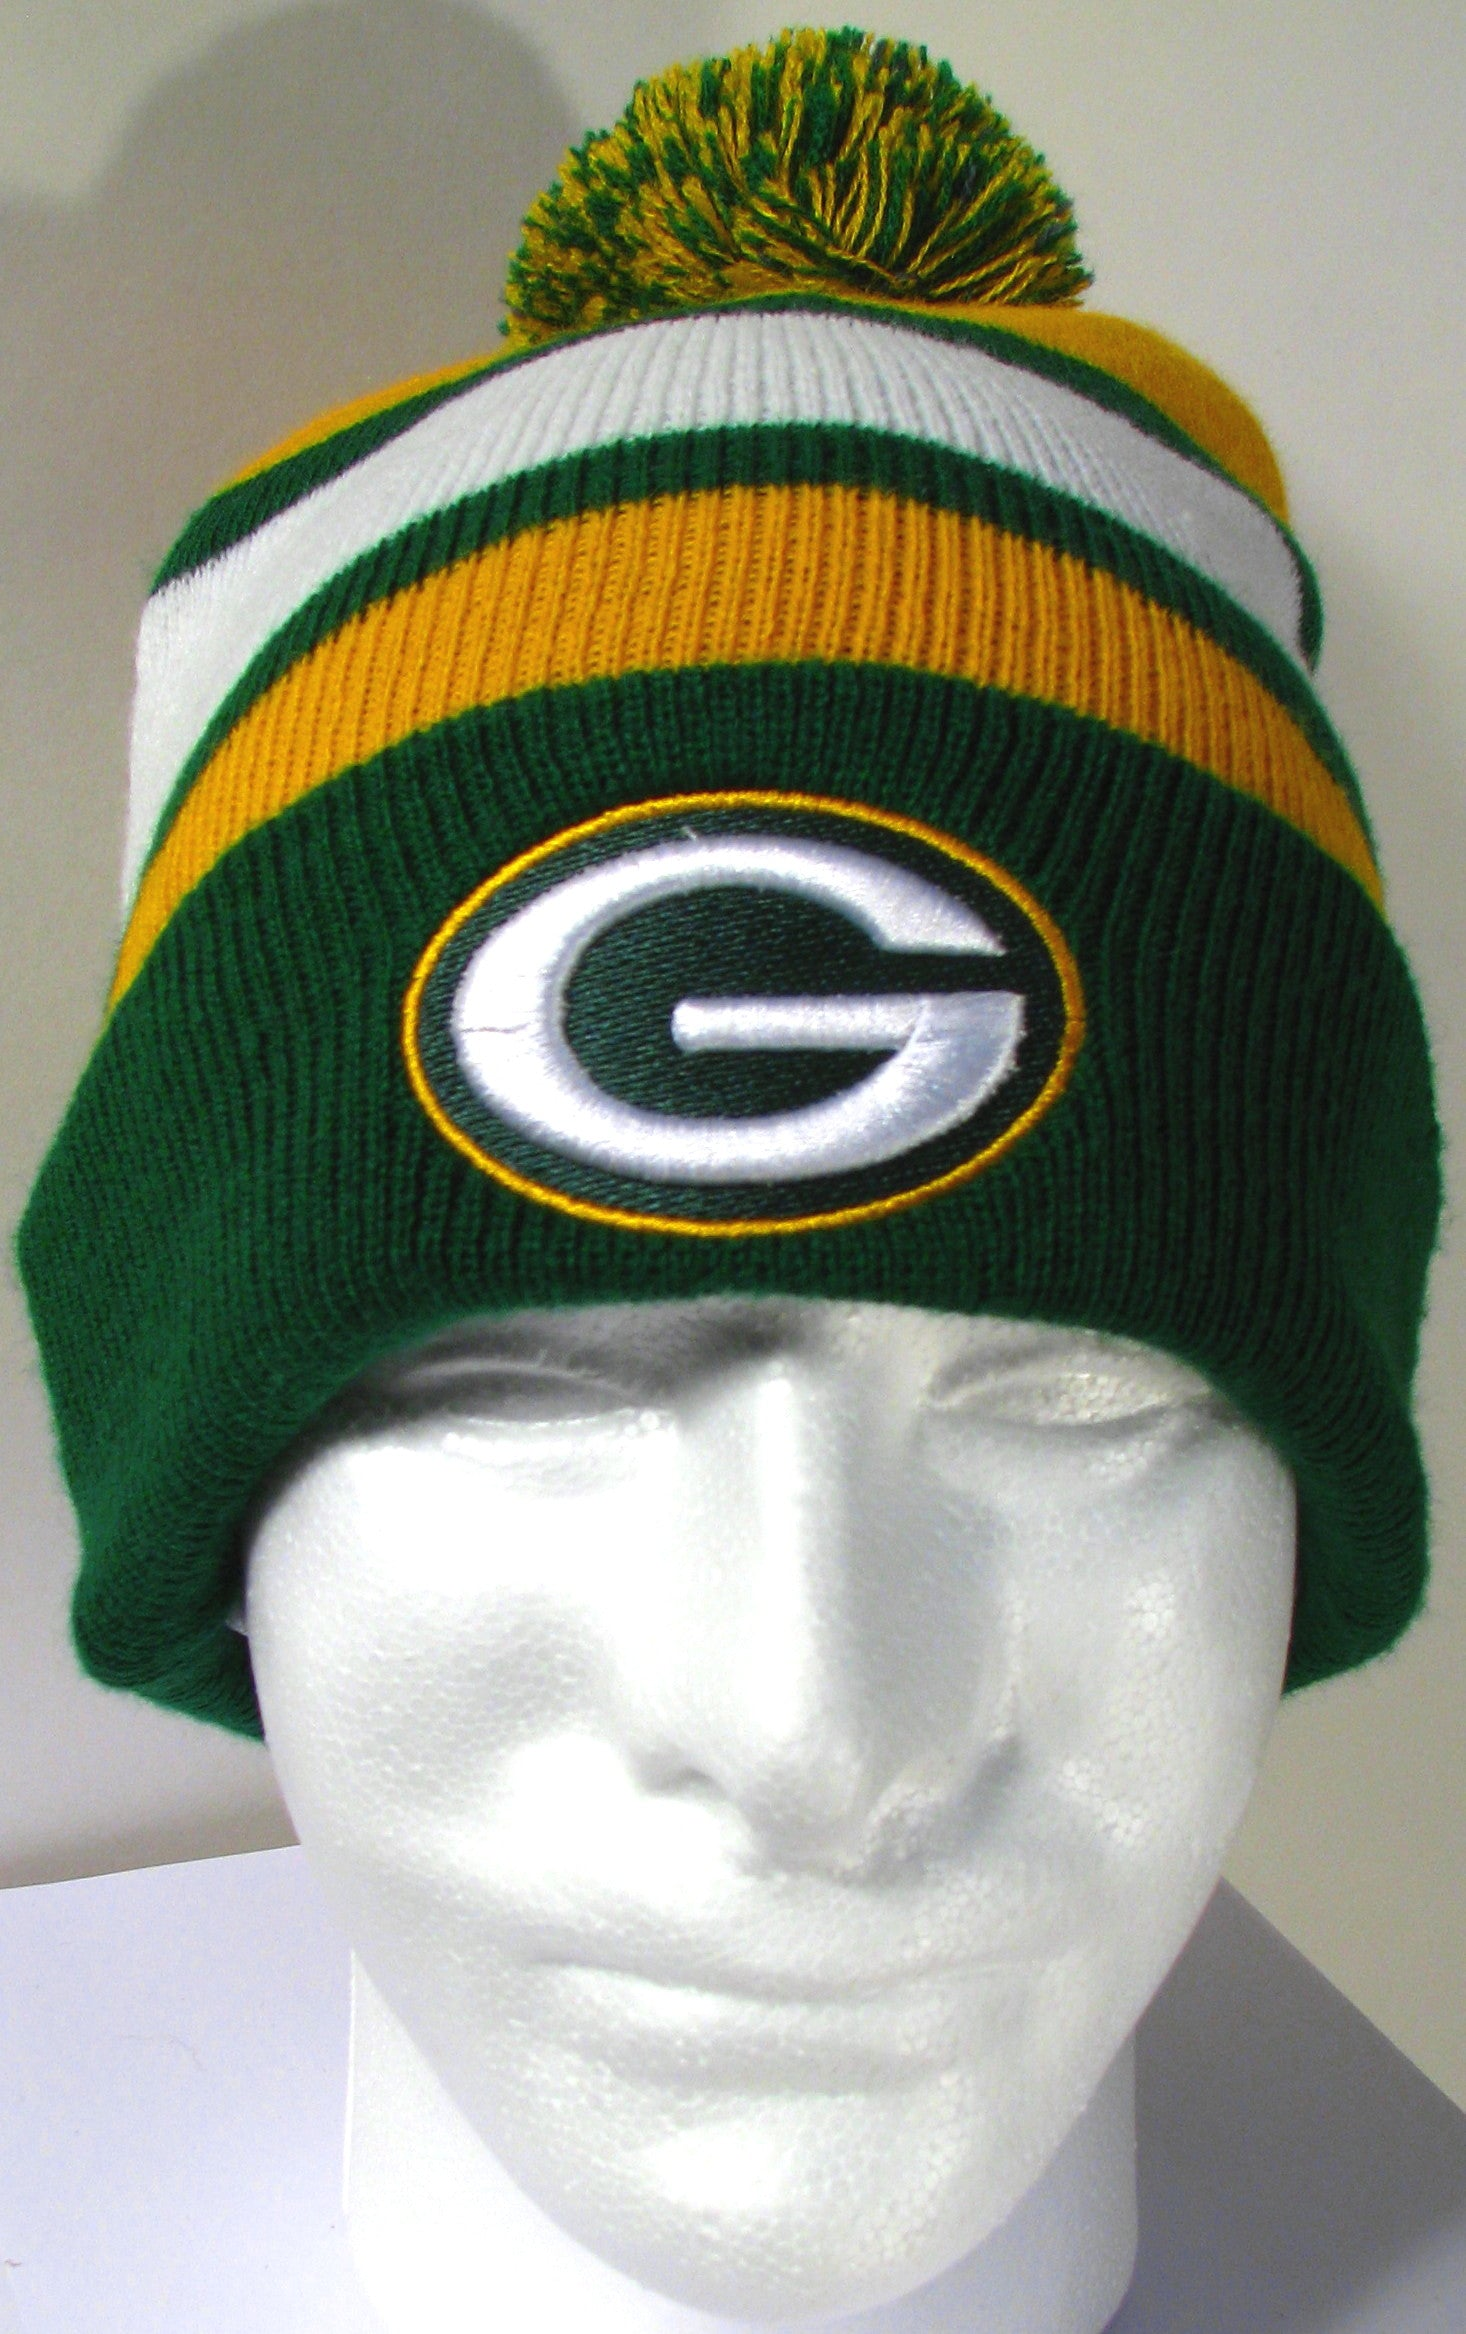 Green Bay Packers Toque